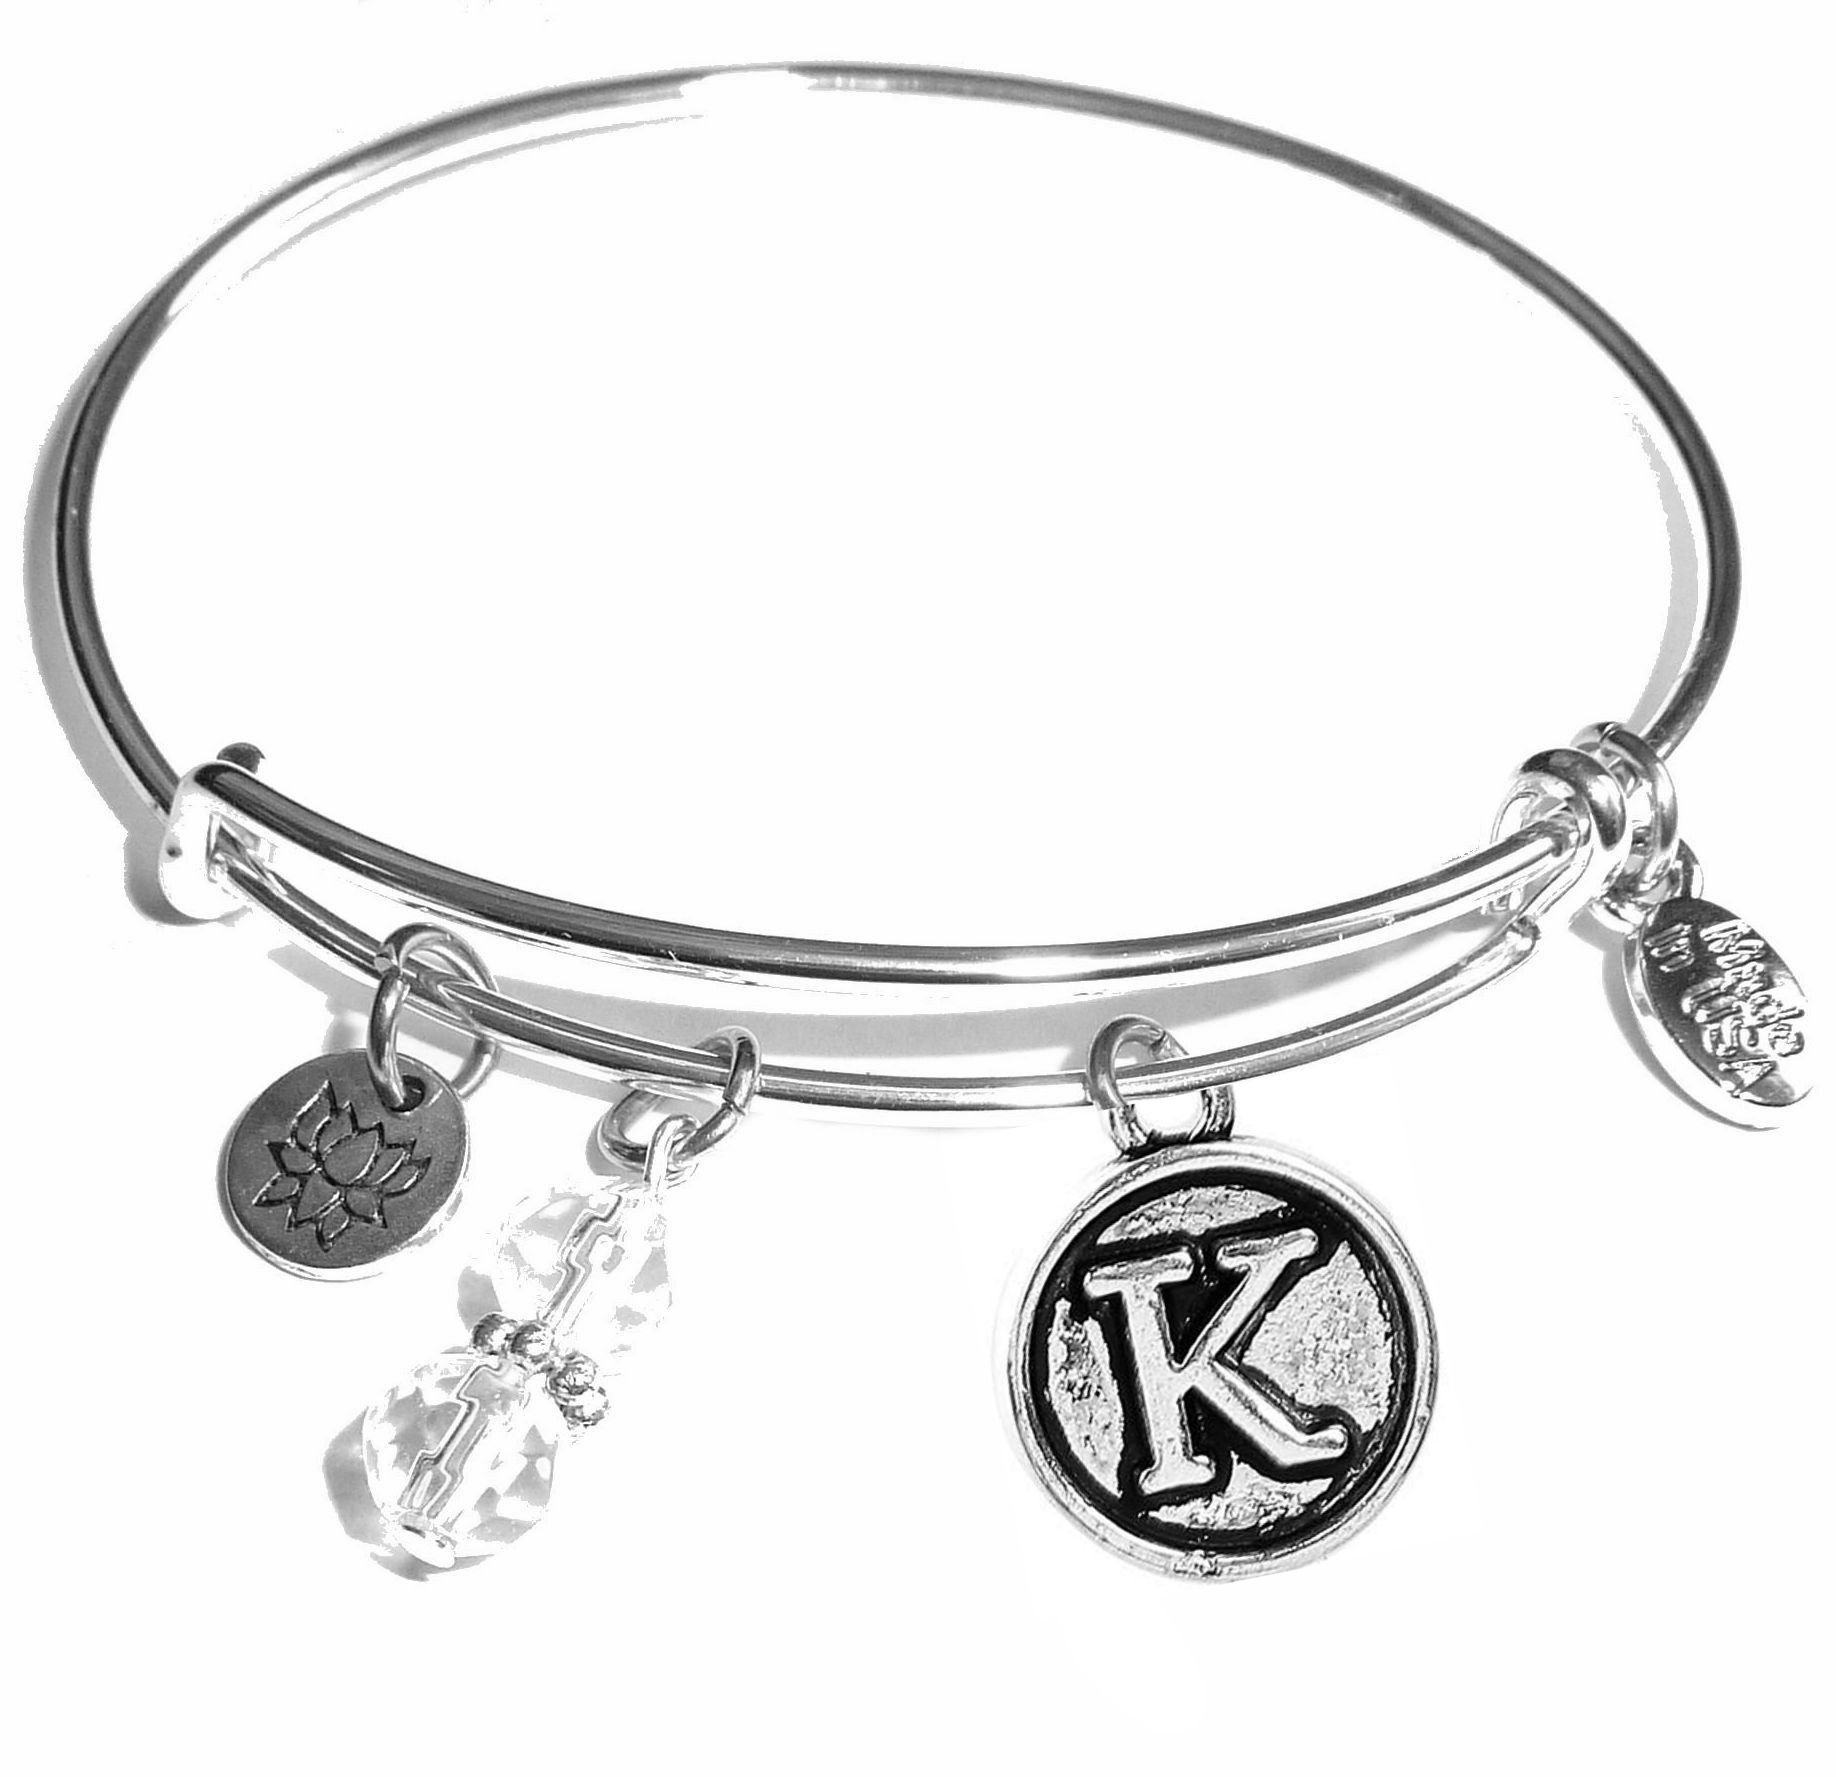 Hidden Hollow Beads Initial Expandable Wire Bangle Bracelet, in The Popular Style (K)